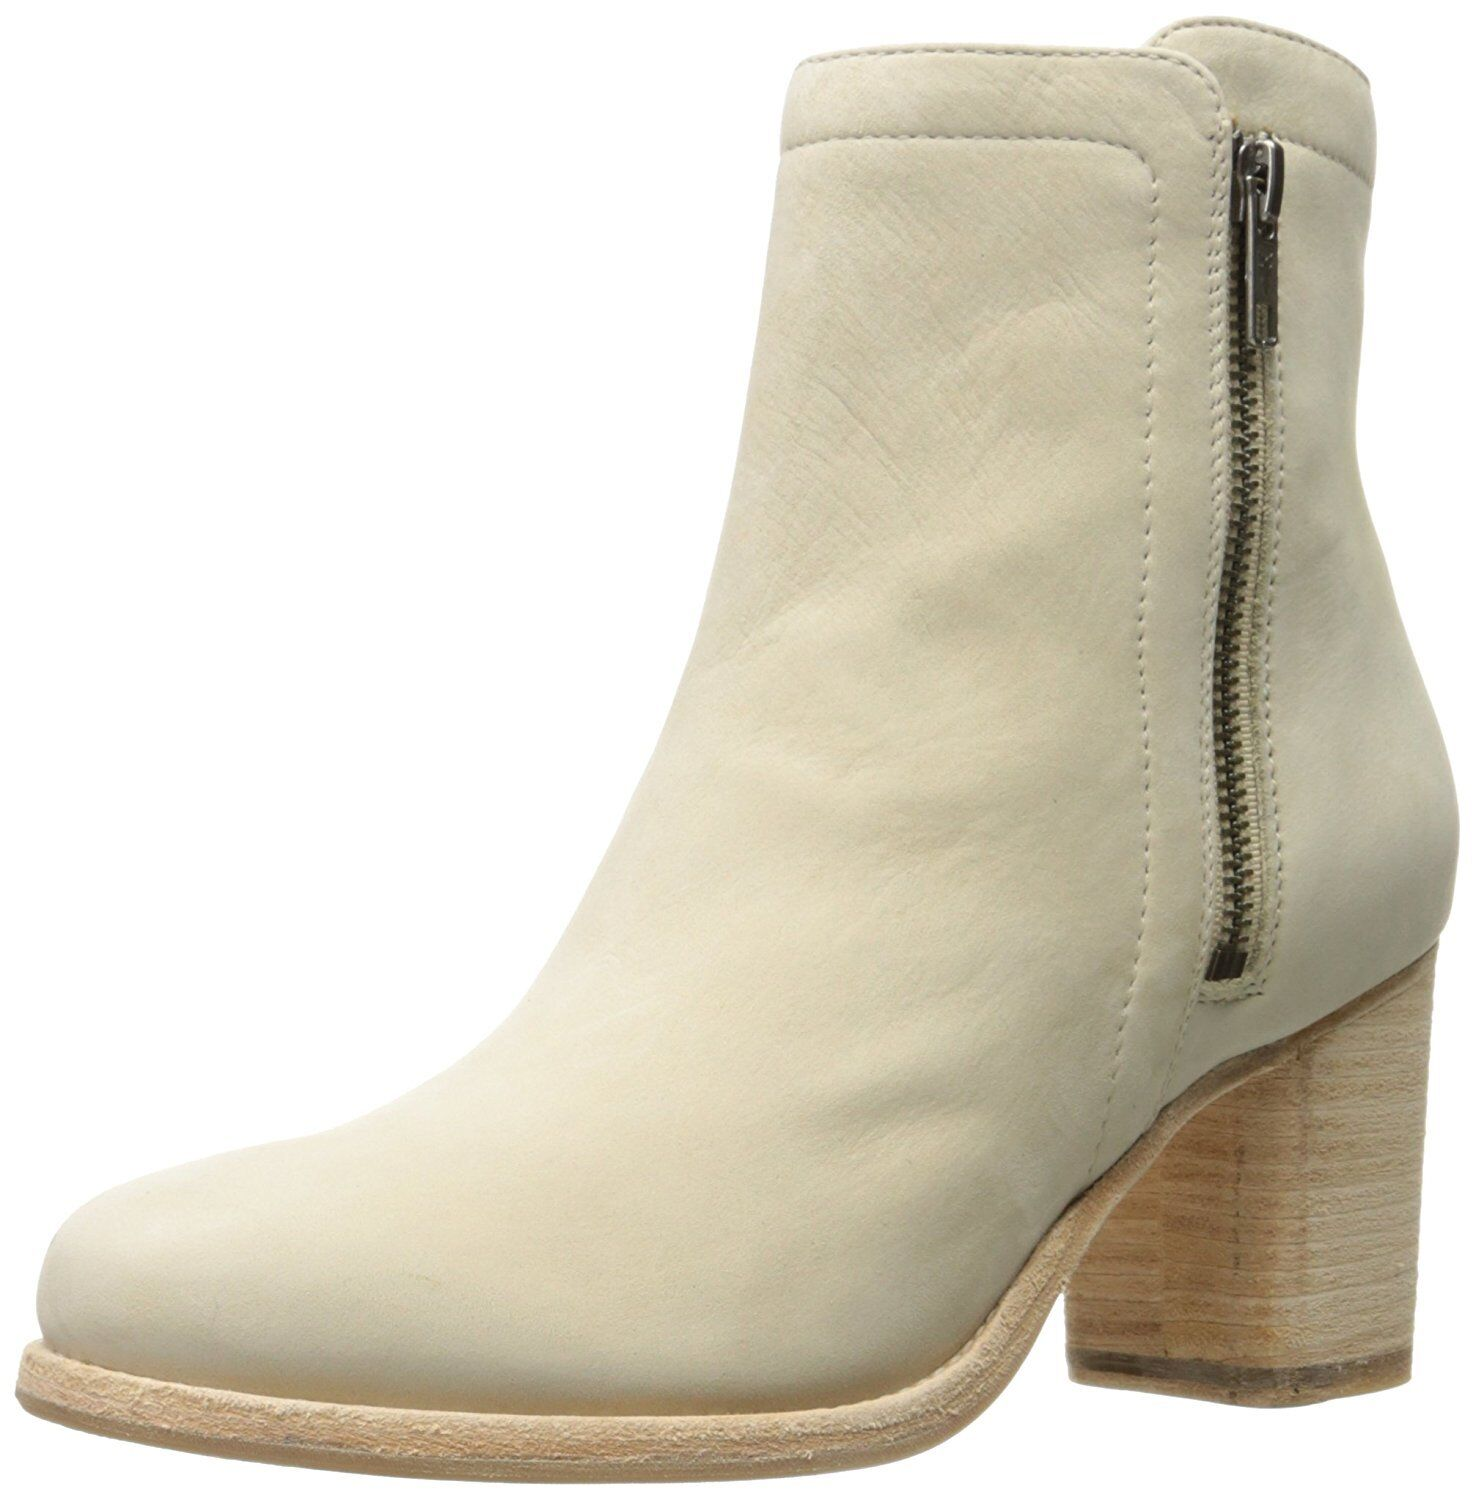 FRYE Womens Addie Double Zip Ankle Bootie- Pick SZ/Color.